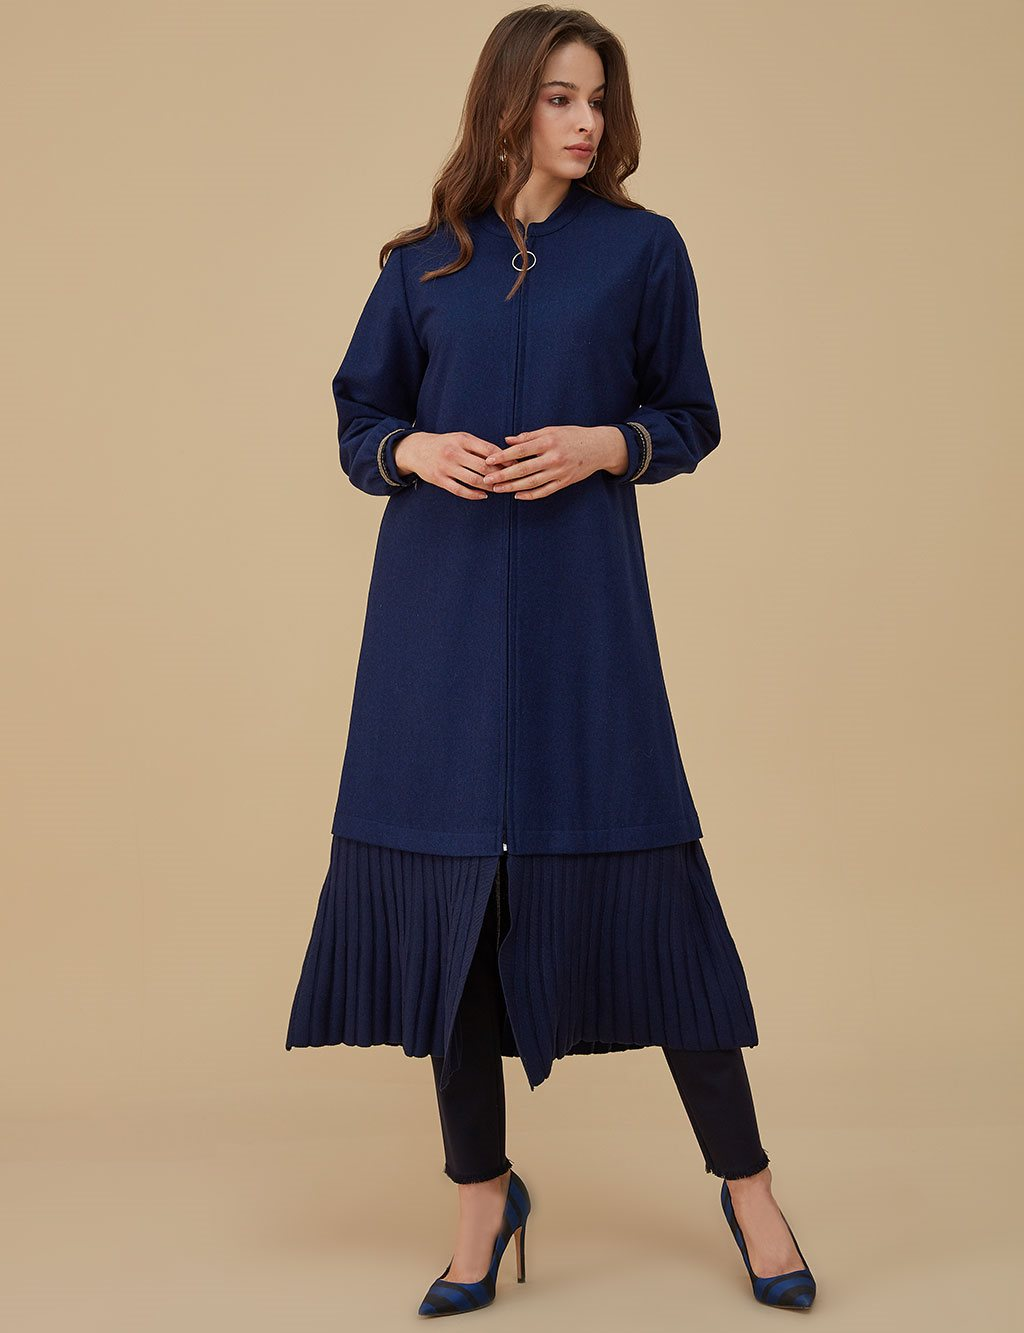 Sleeve Detailed Coat A9 25091 Saxe